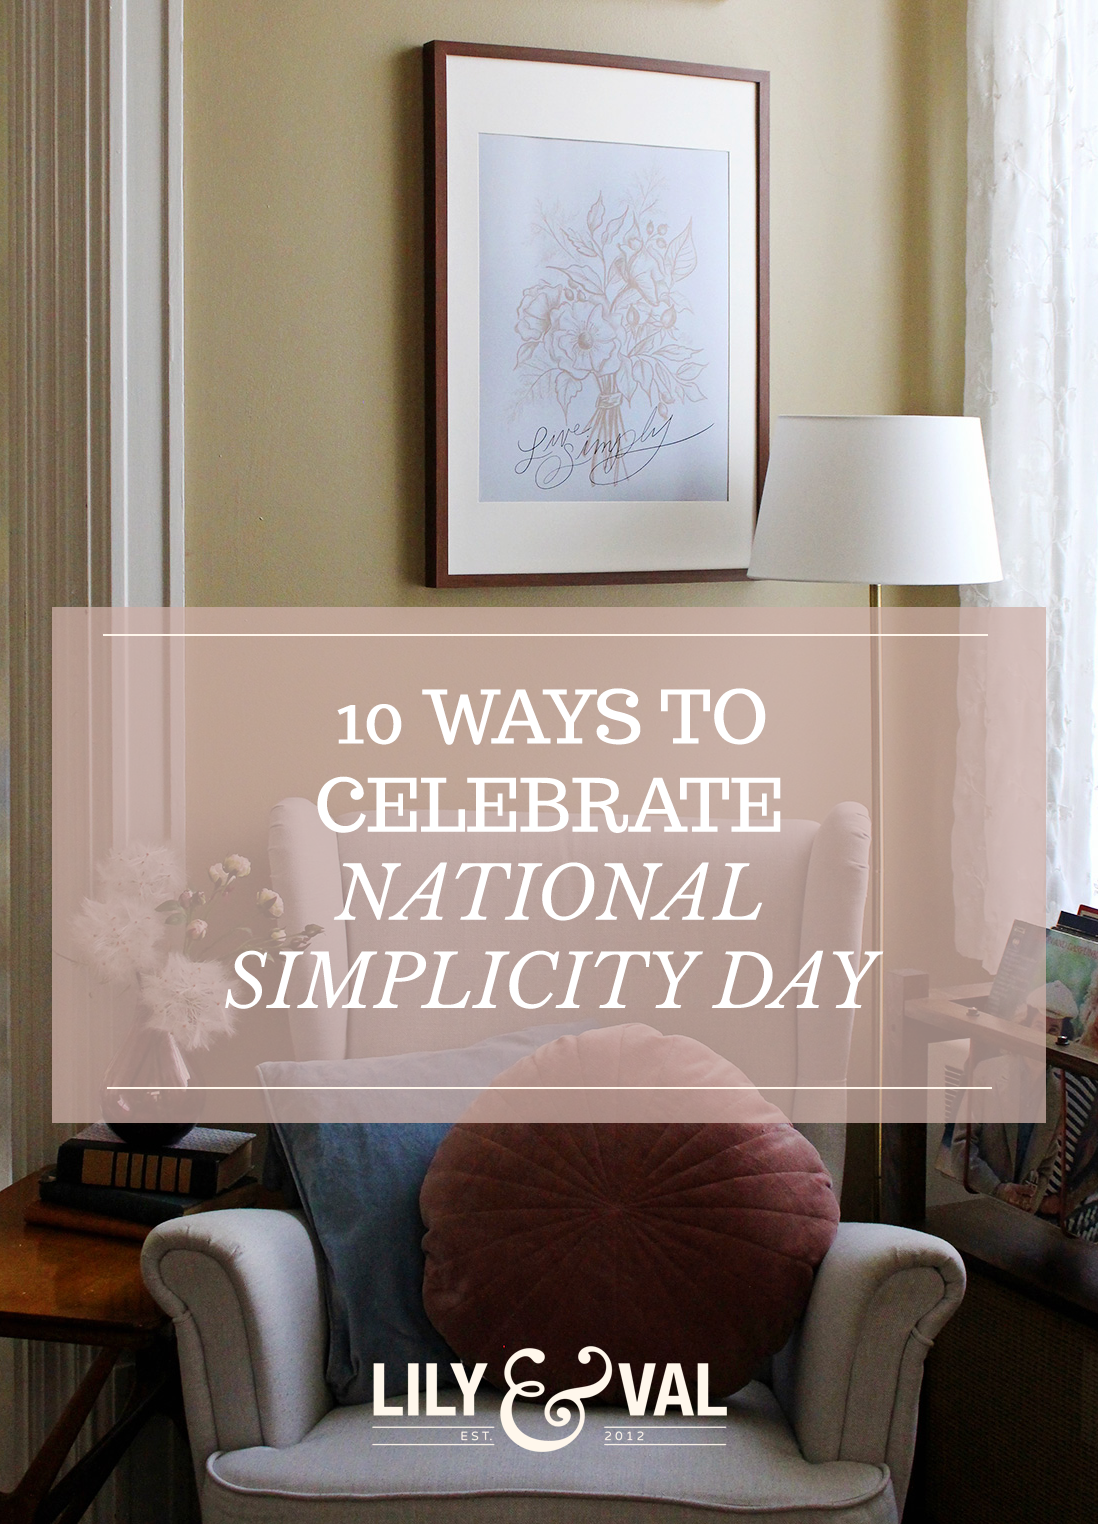 10 Ways To Celebrate National Simplicity Day